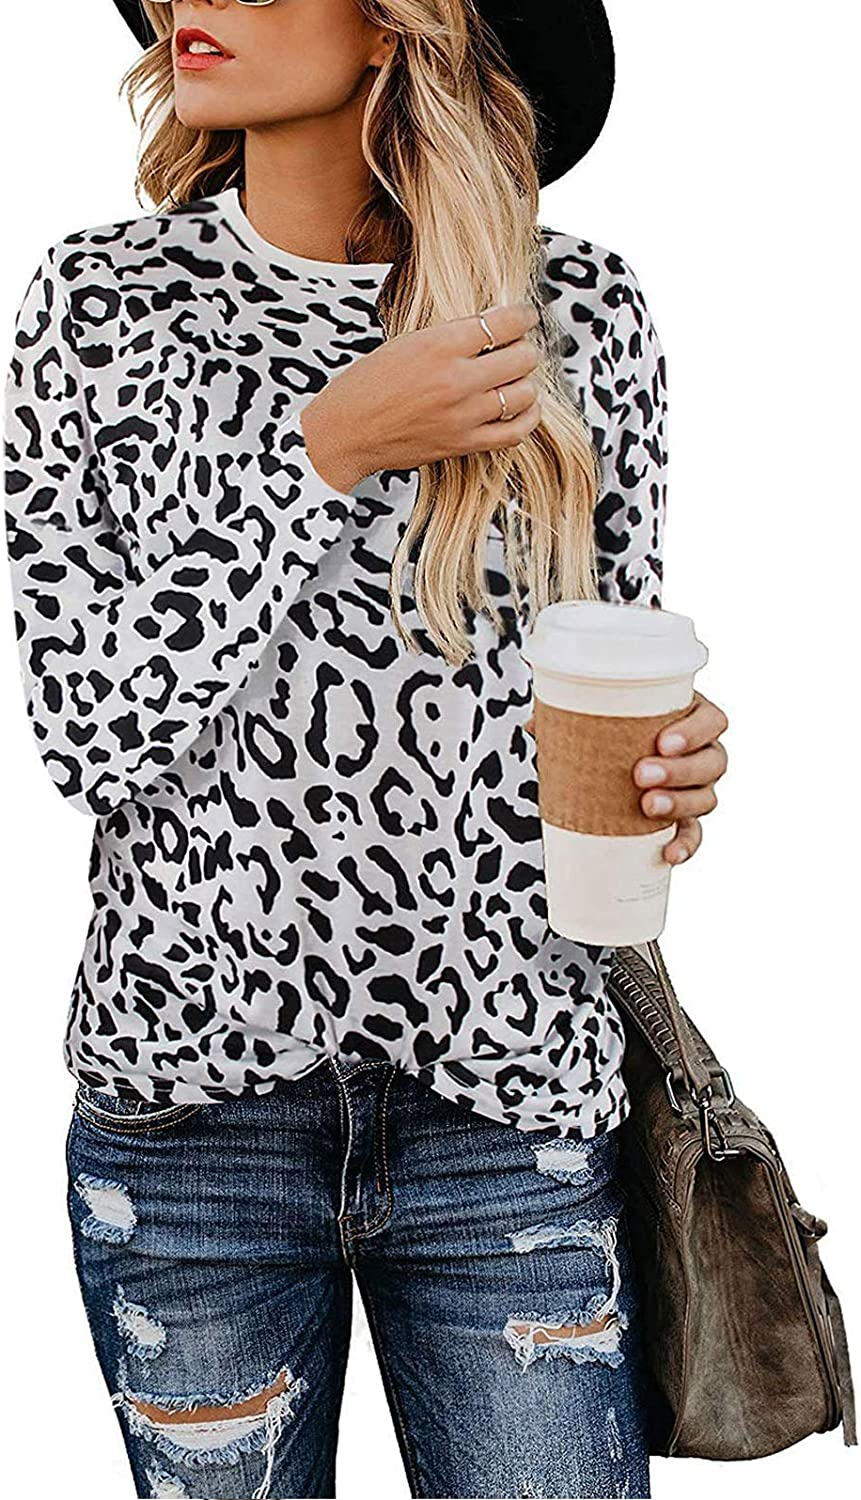 Adibosy Women Leopard Print Shirts Basic Tunics Round Neck Comfy Tops Long Sleeve Fashion Blouse